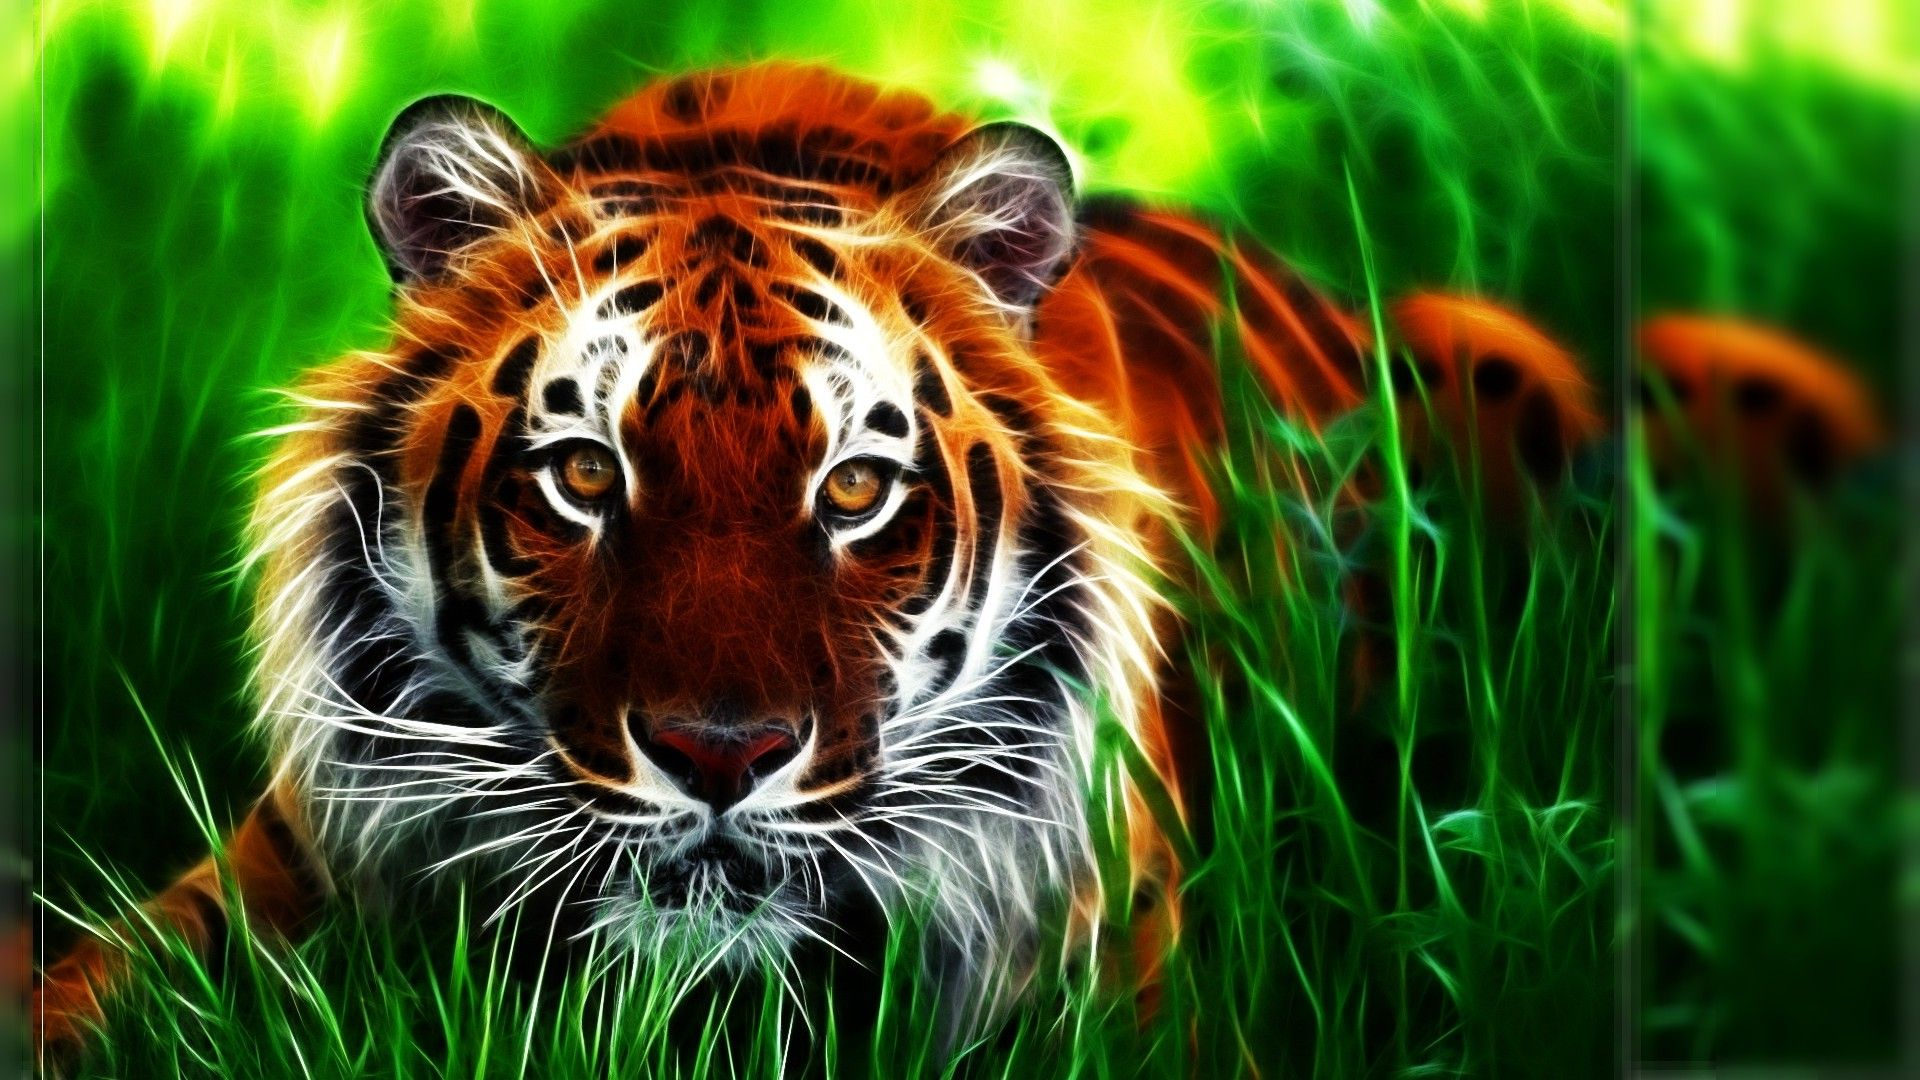 Amazing 3d Hd Wallpapers Tiger On Image Wallpapers With 3d Hd